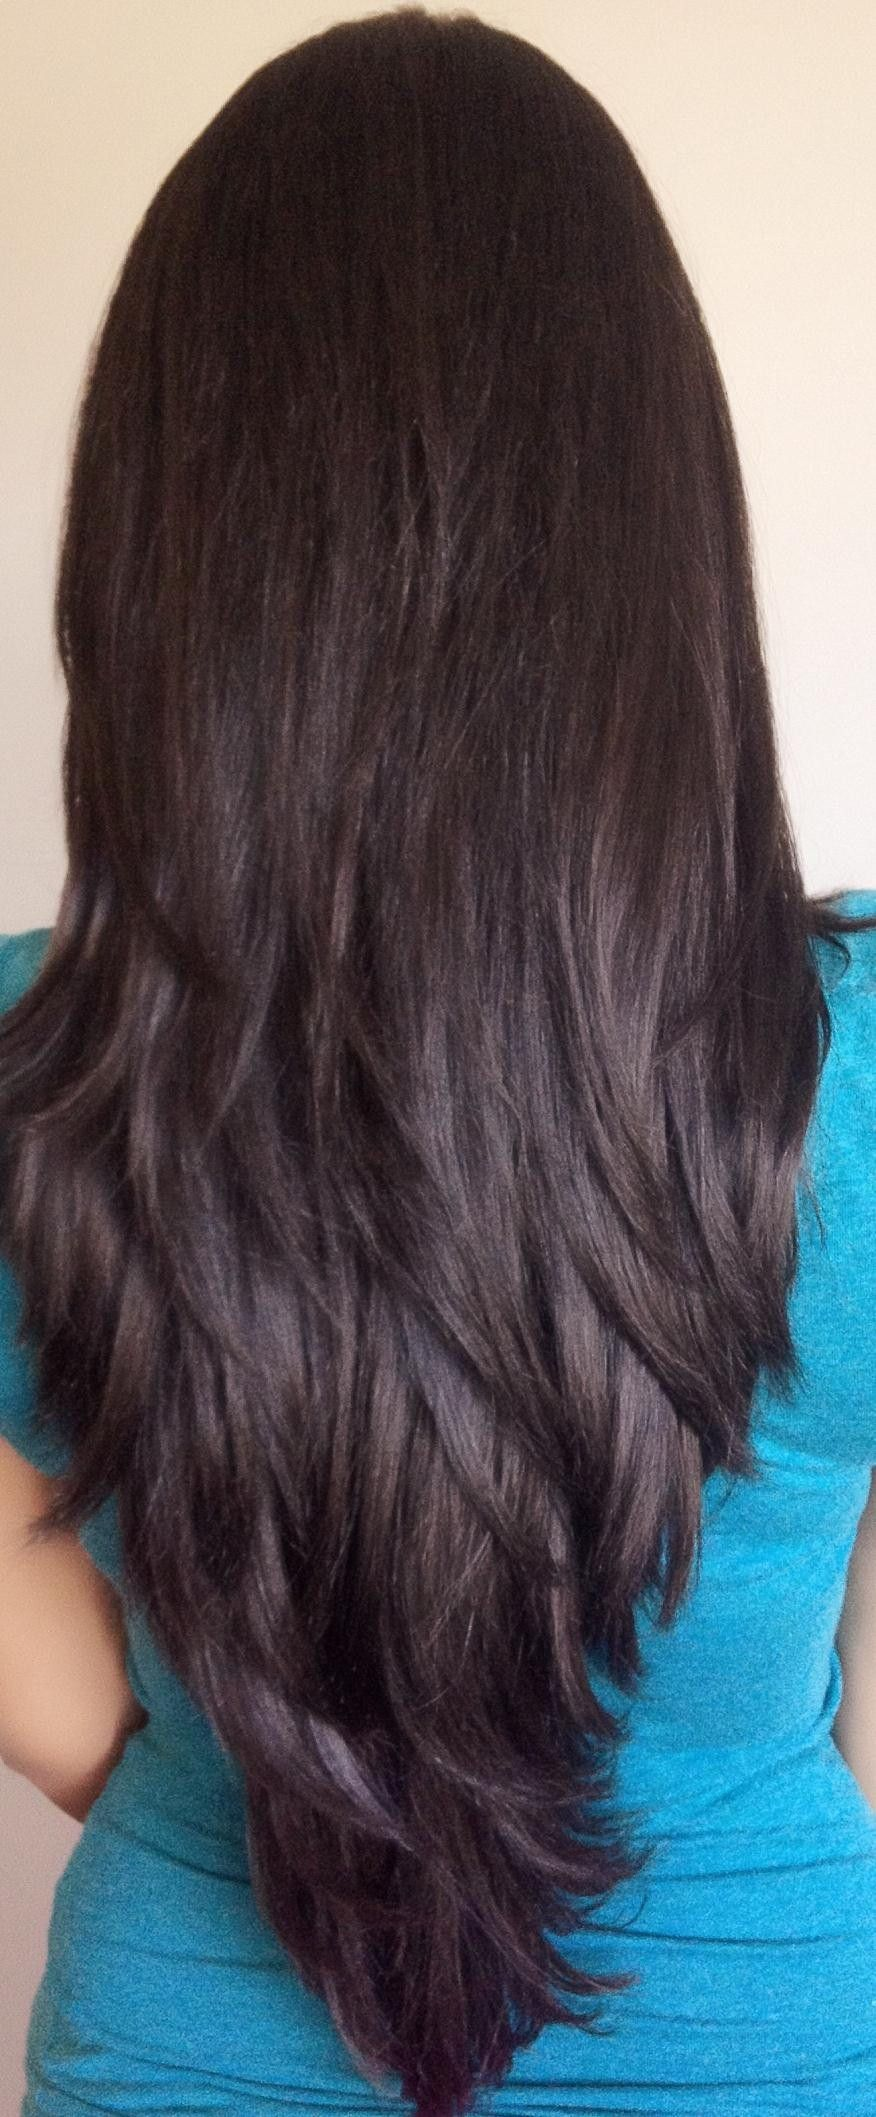 long curly layered haircuts back view - Haircuts Gallery Images